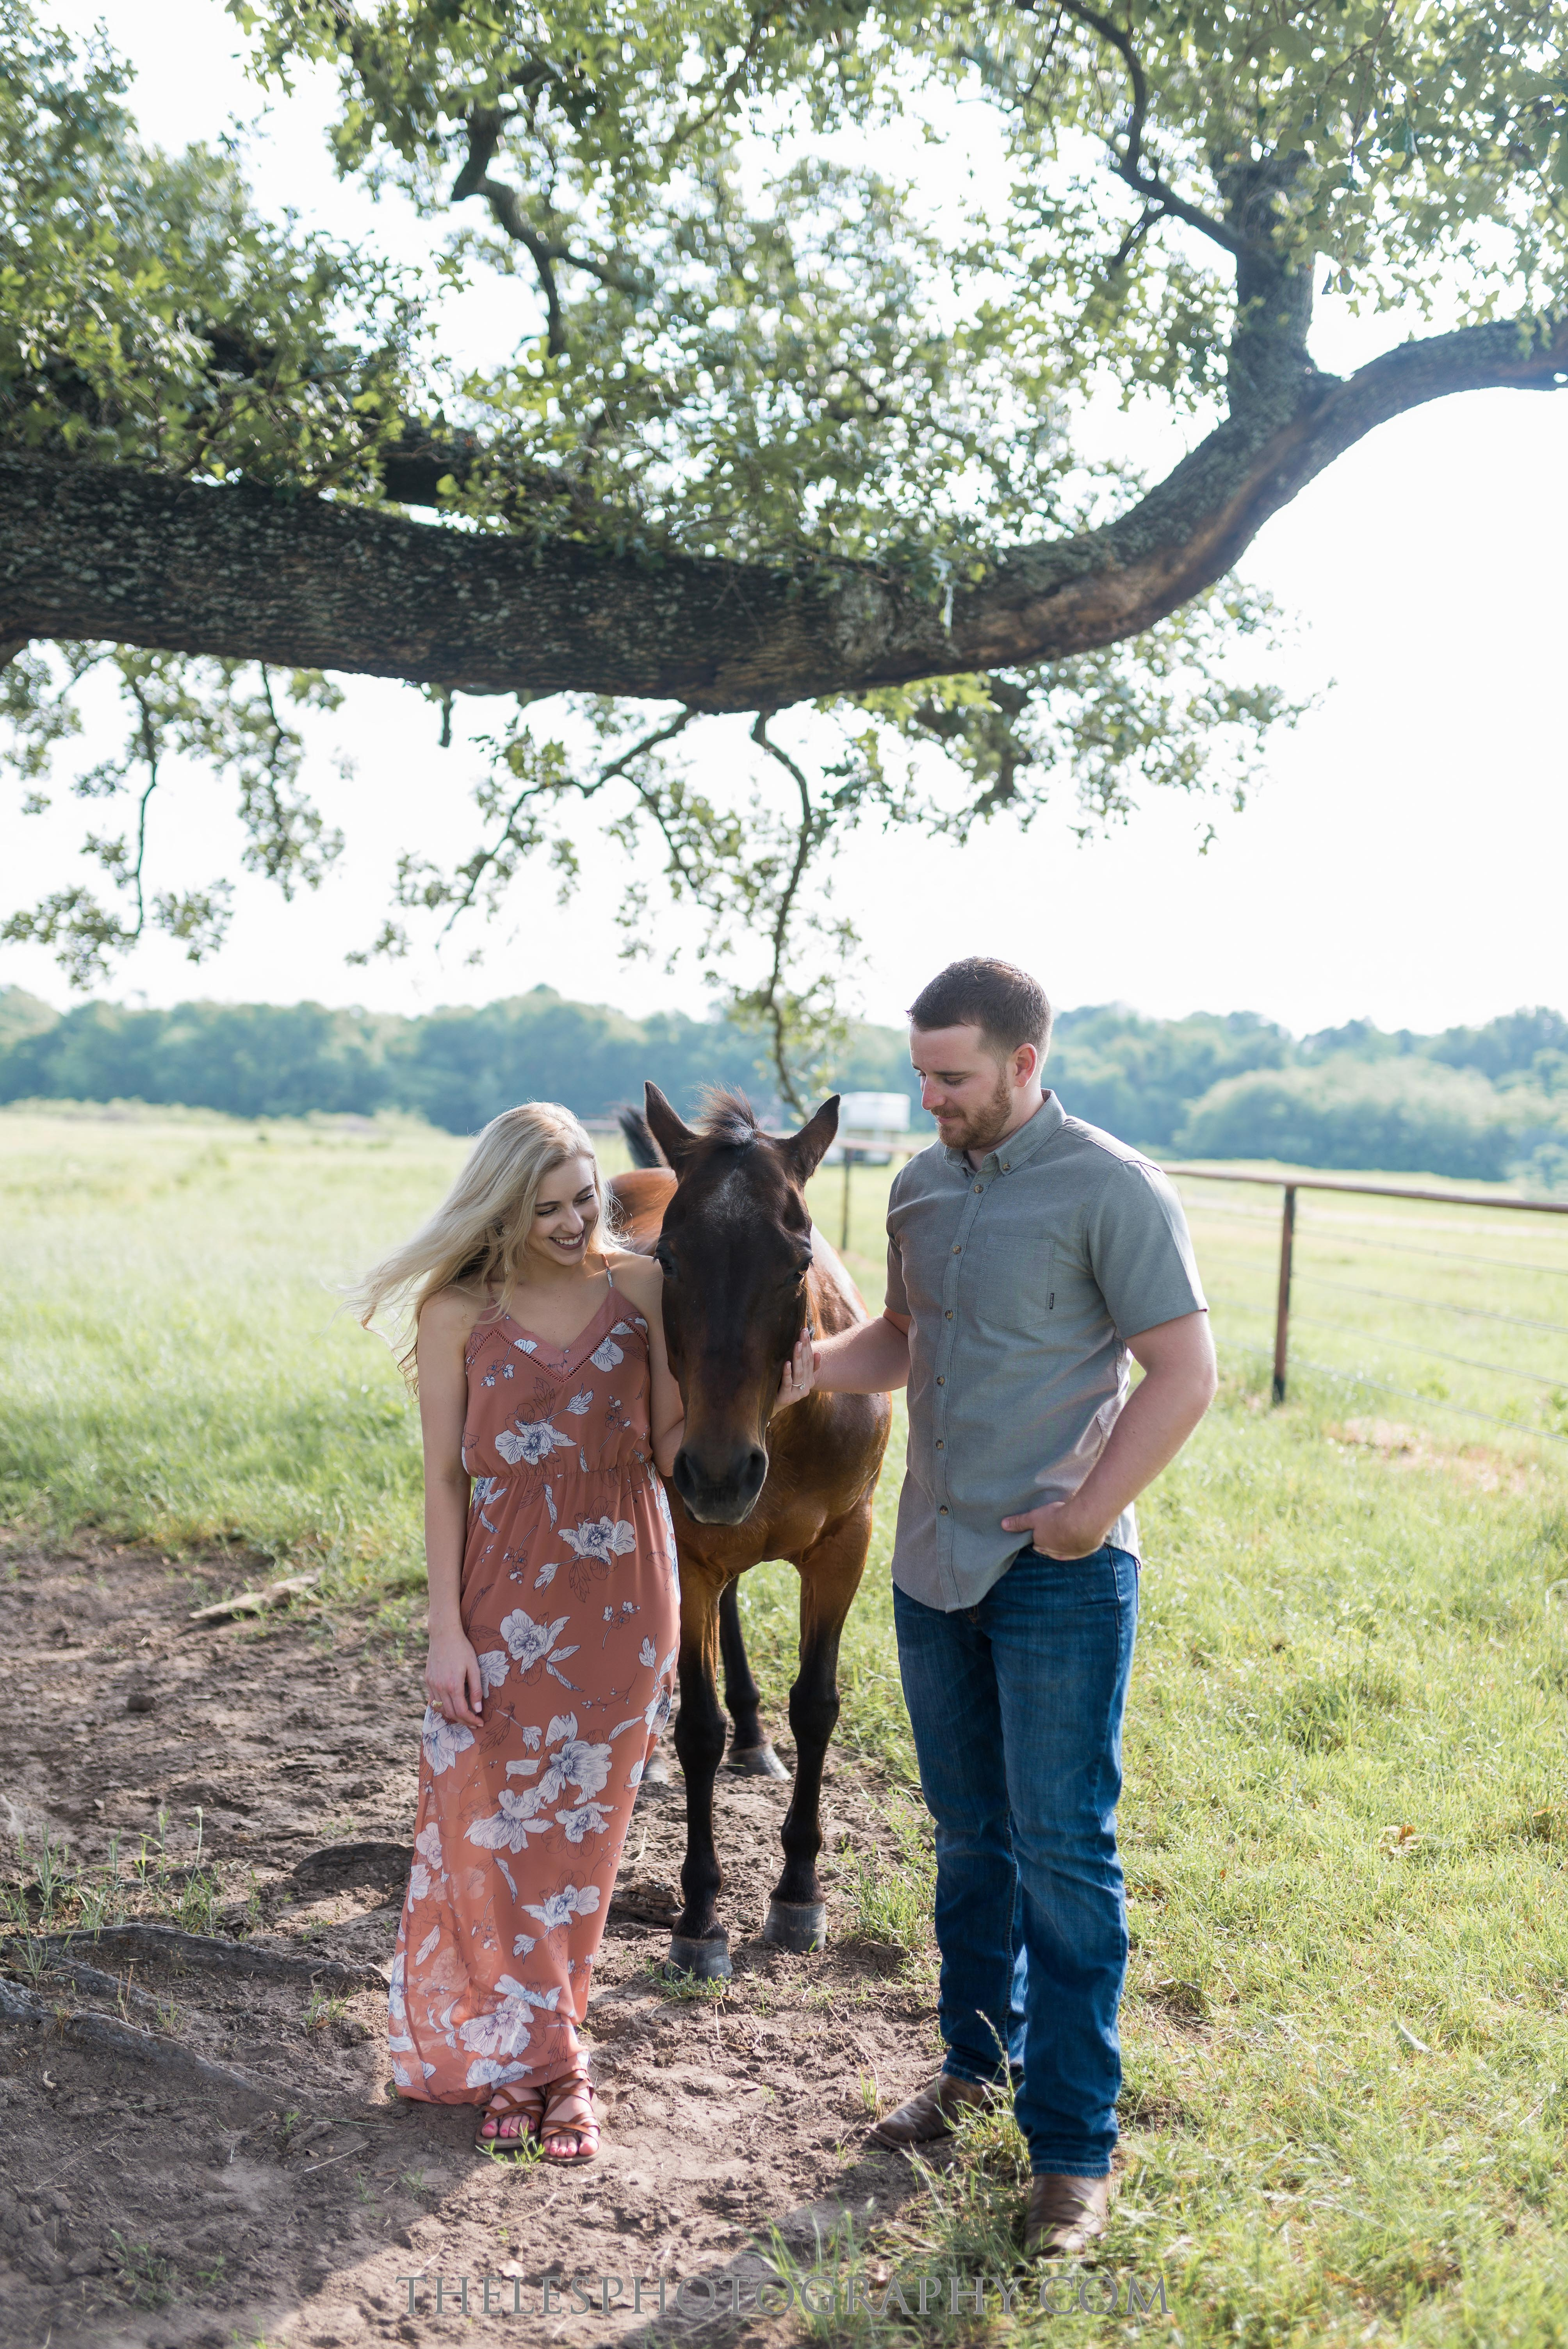 The Les Photography - Dallas Wedding Photographer - Trinity Groves Engagement - Haley and Noah 16